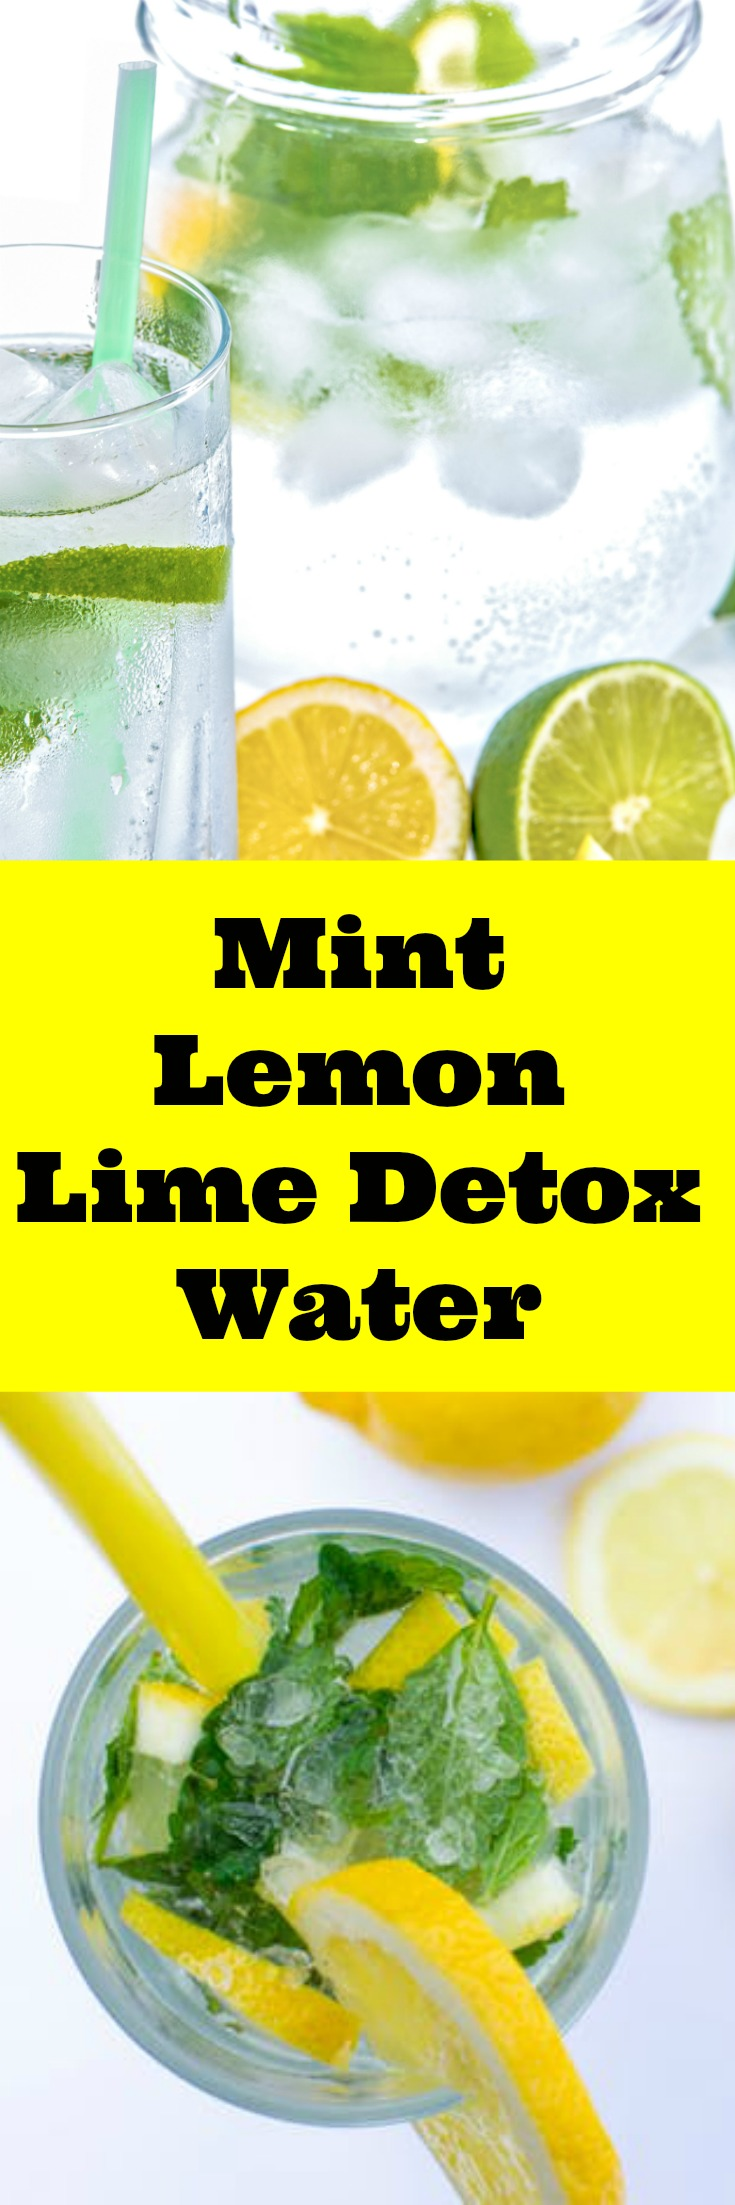 Help your system flush unwanted toxins first thing in the morning. Drink throughout the day to stay hydrated and full. It boosts metabolism, cleanses, and burns fat